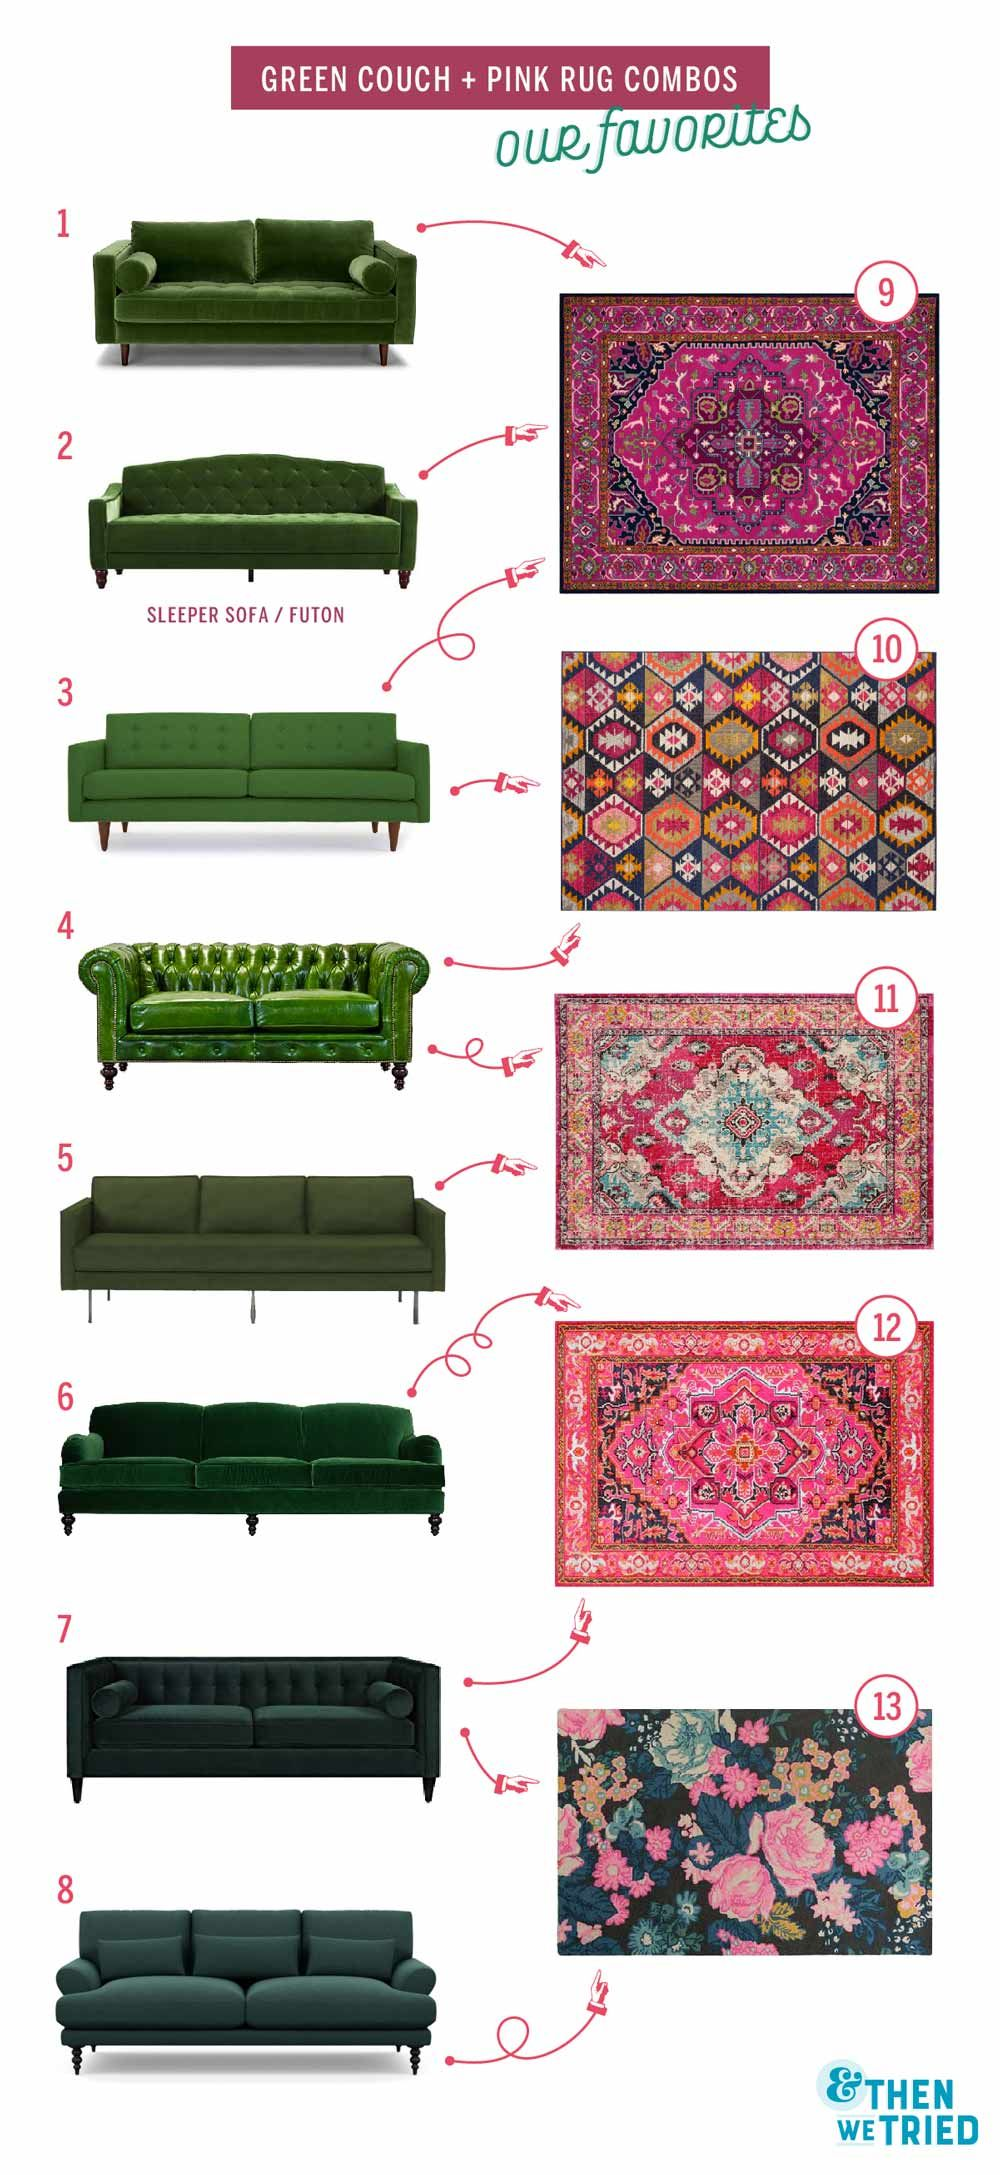 Carpet clipart pink rug. Colorful living room refresh